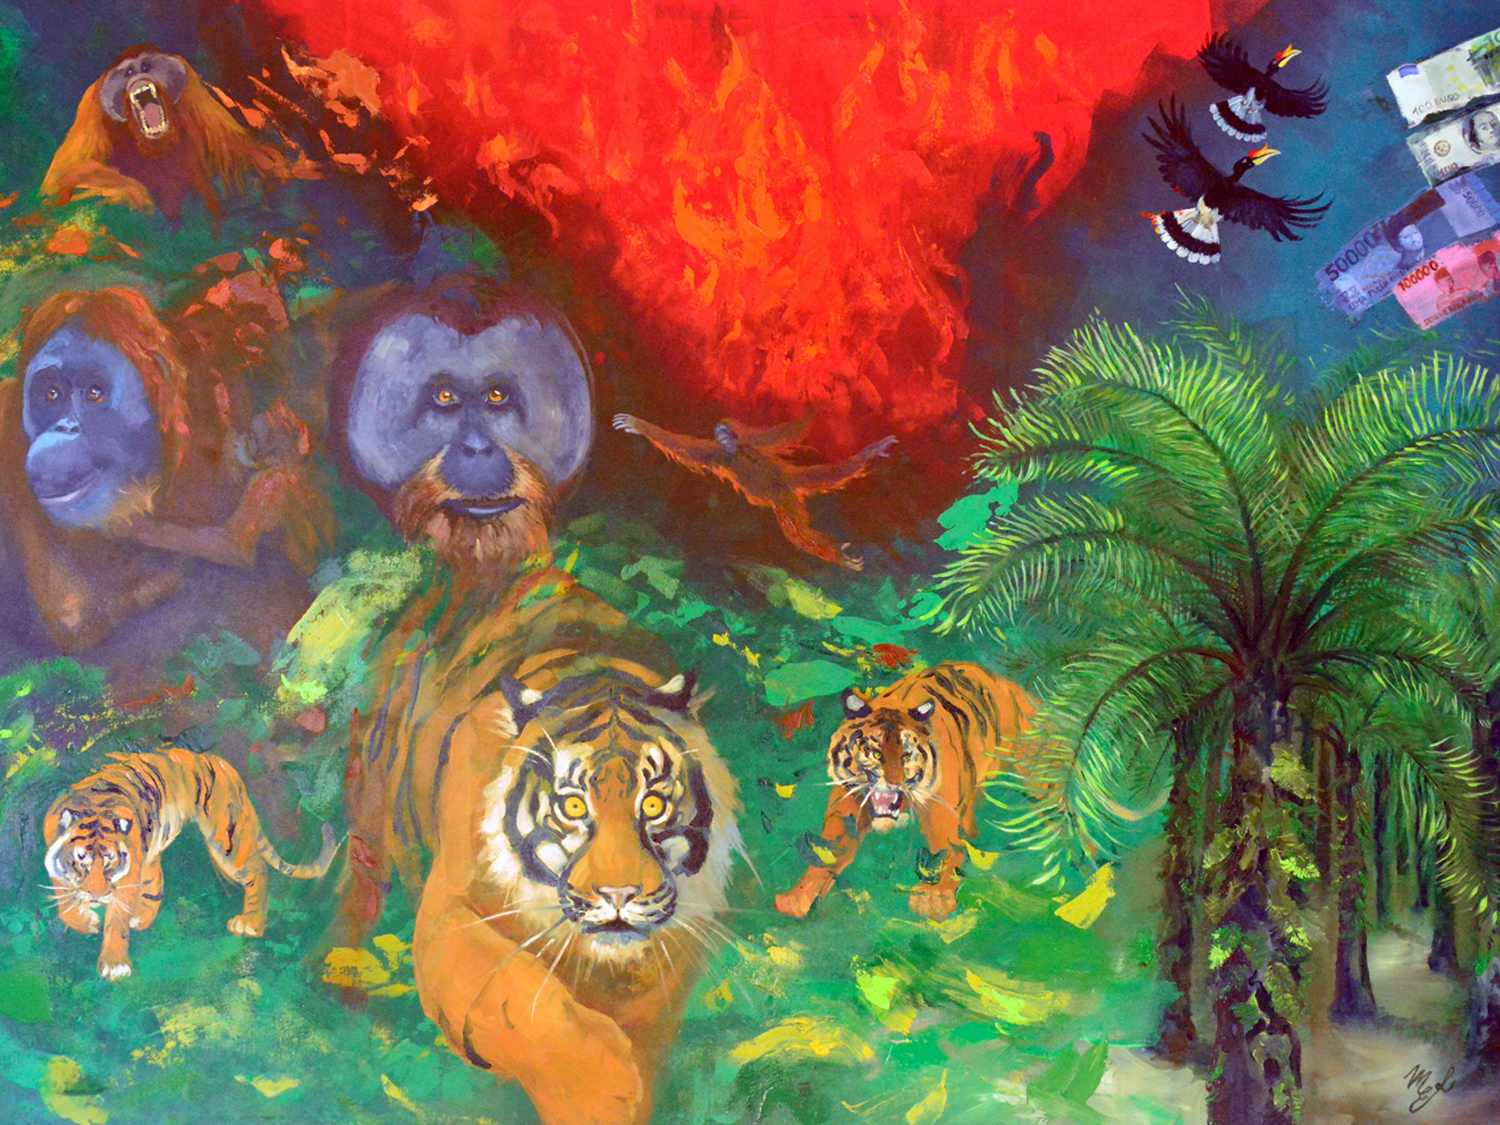 Wildlife conservation painting.